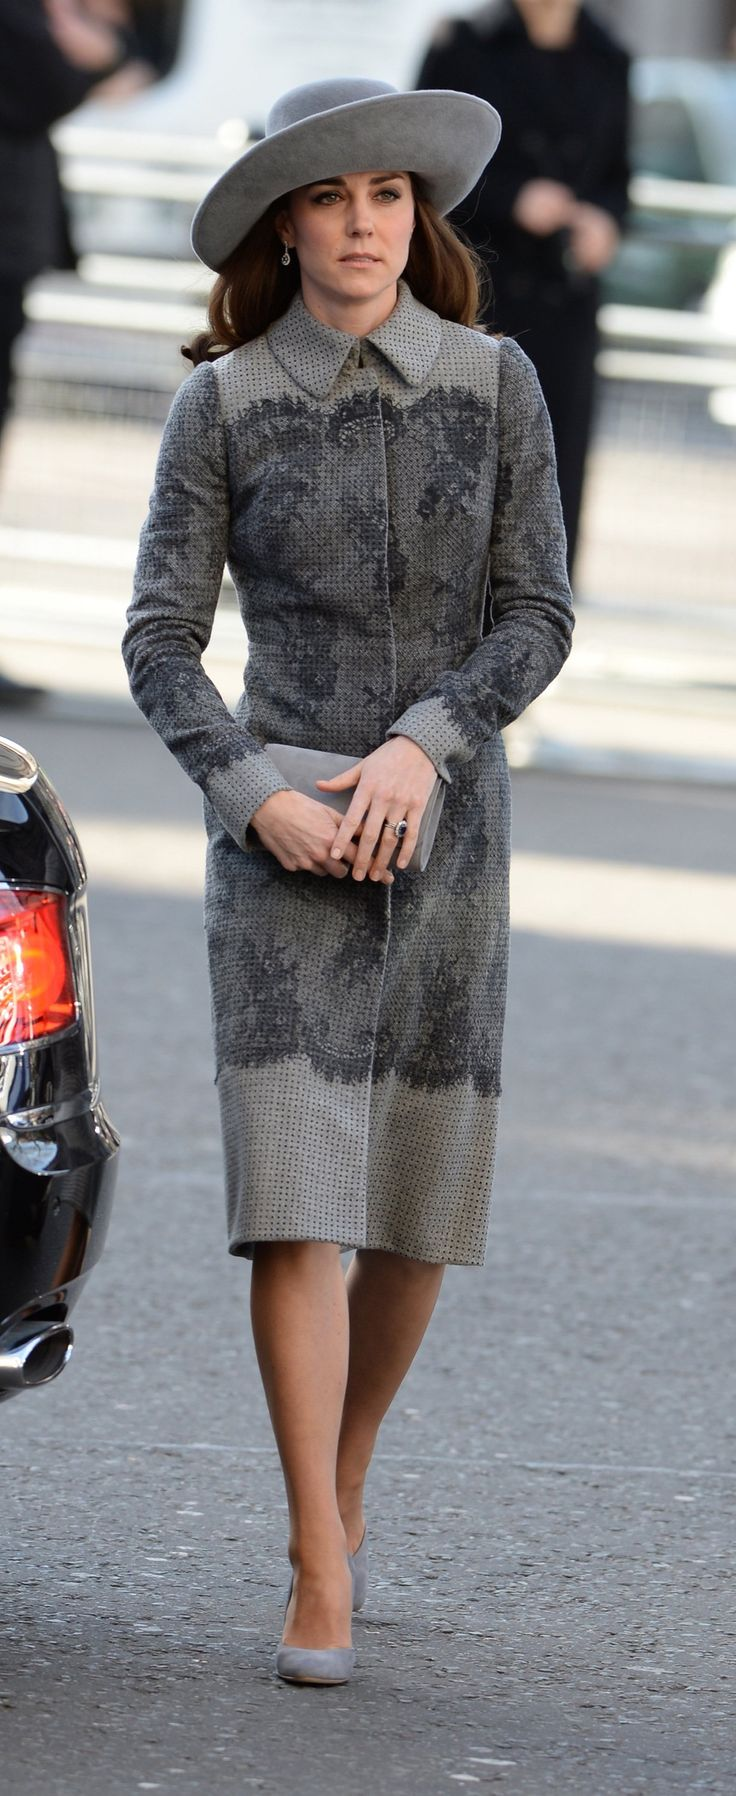 Kate Middleton's Latest Crown Coordinates With Her Coat- Middleton's Erdem coat has traces of Savile Row tailoring with lace being applied over a menswear-inspired fabric as a feminine counterpoint. It's this trompe l'oeil effect that gives the mother-of-two a fresh and streamlined spin on her classic prim-and-polished aesthetic